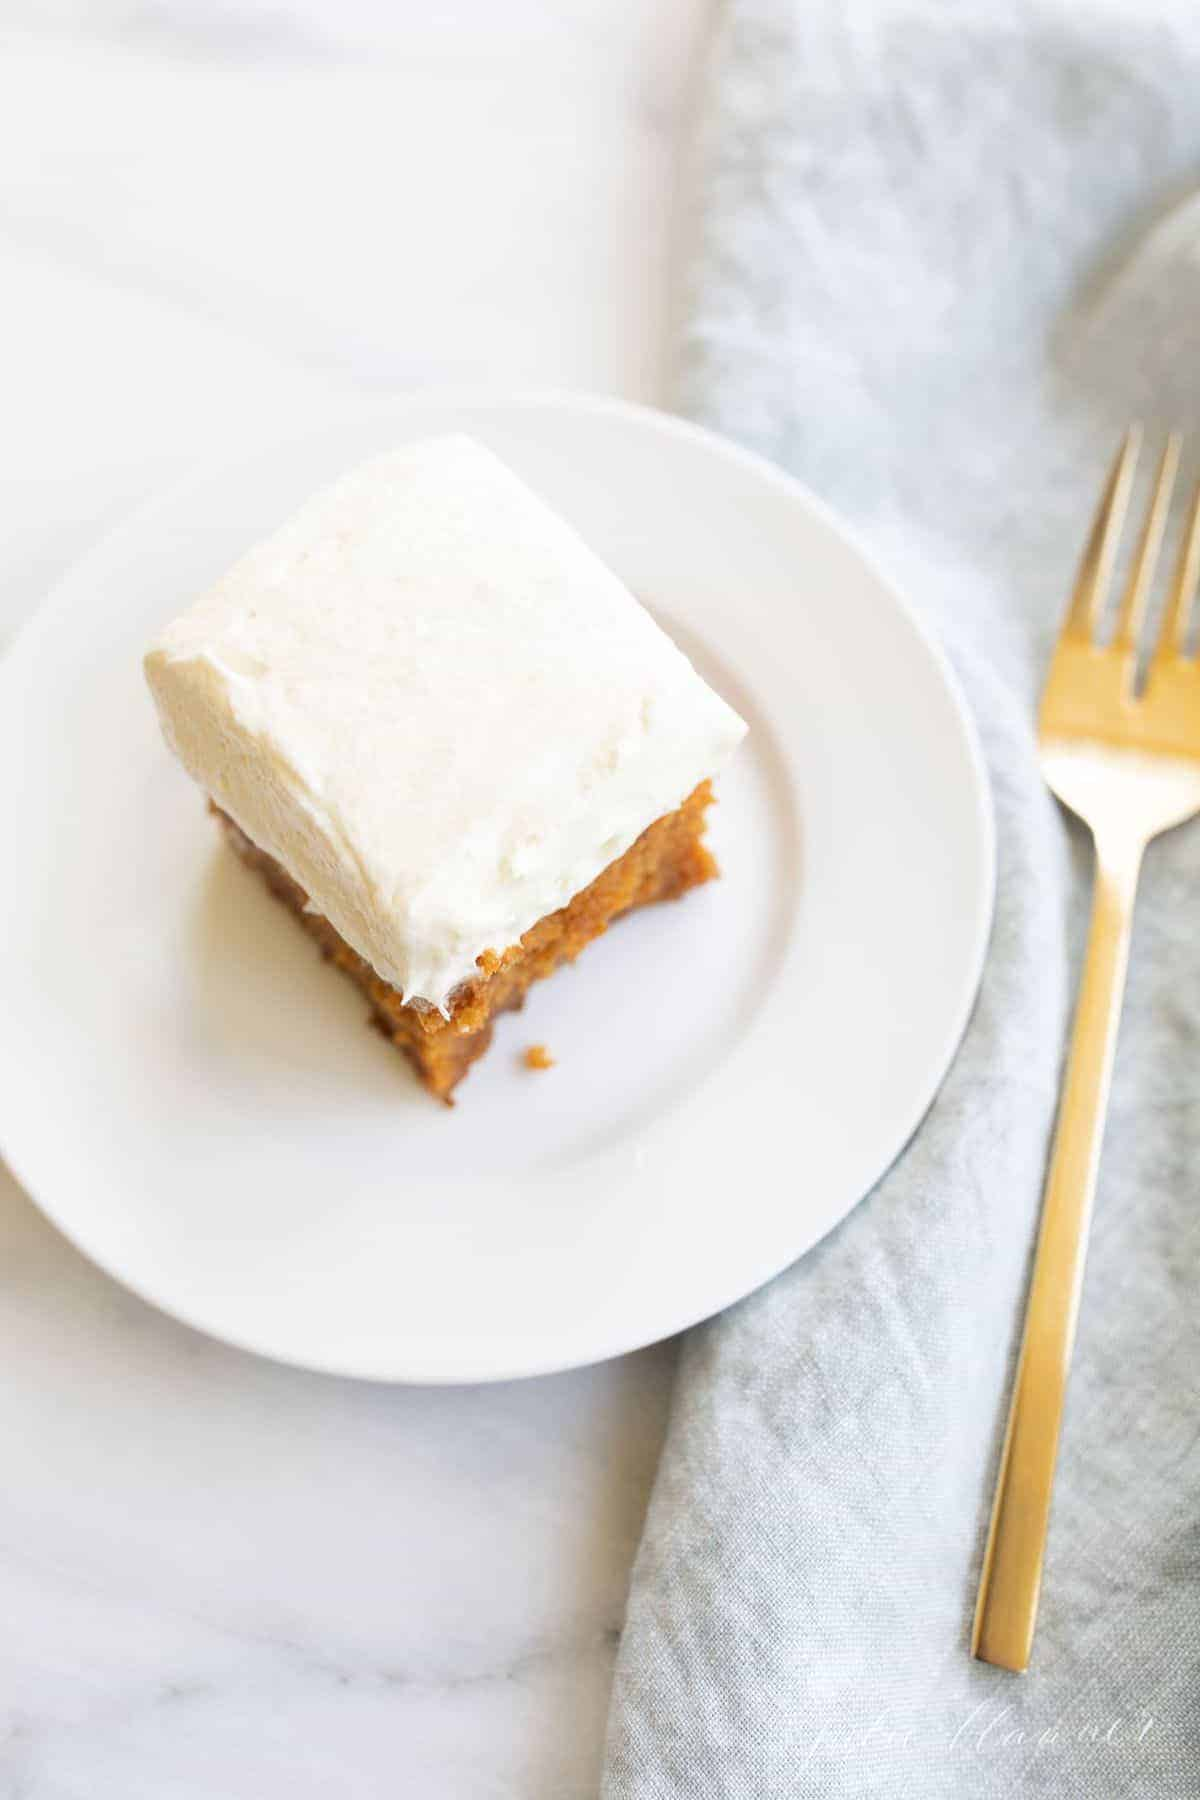 White counter with a white plate, slice of cake with cream cheese frosting and blue linen napkin, gold fork to the side. #creamcheesefrosting